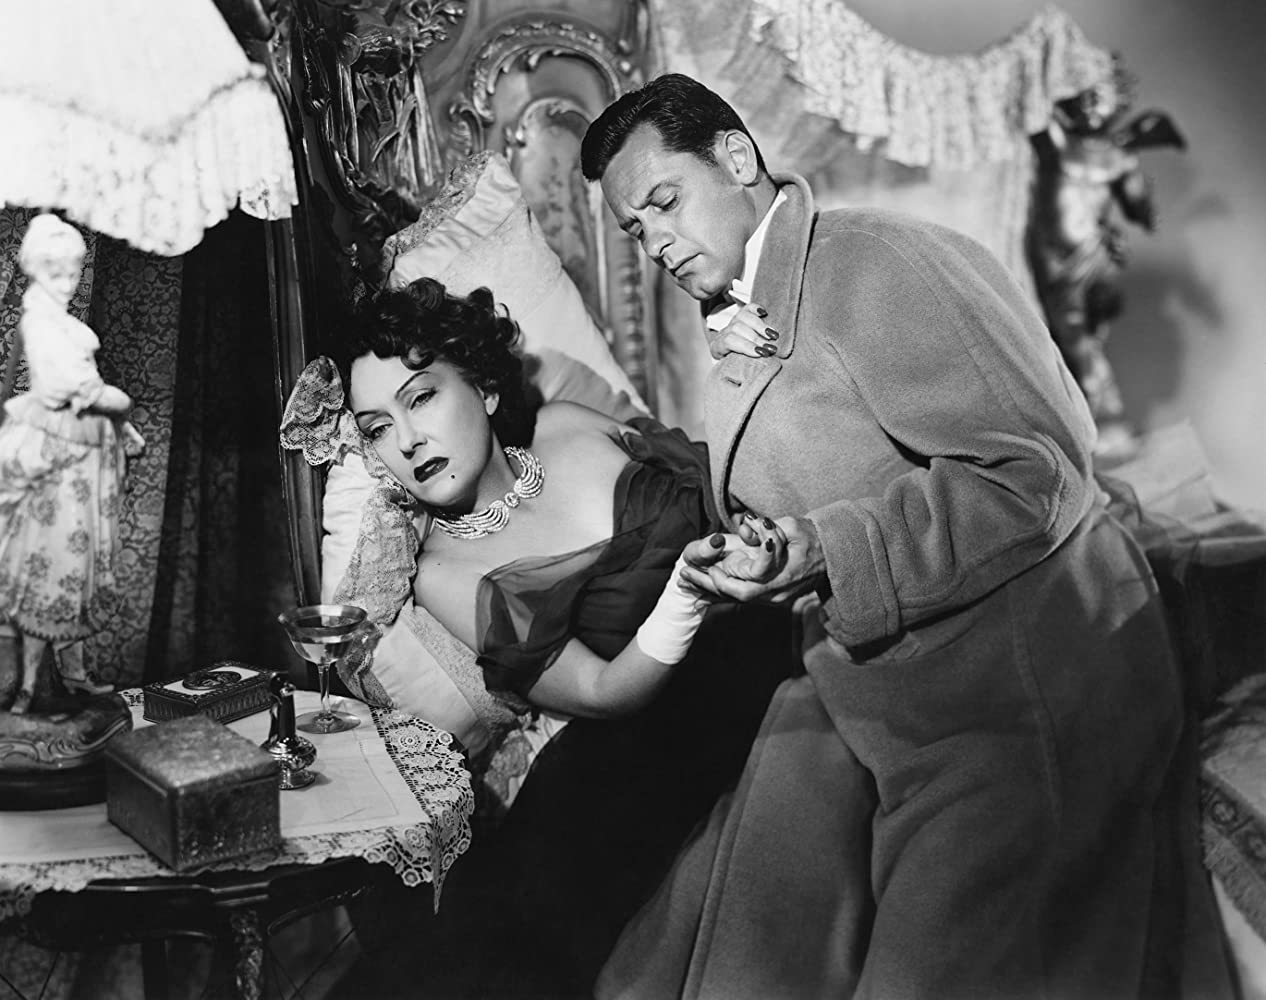 William Holden and Gloria Swanson in Sunset Blvd. (1950)